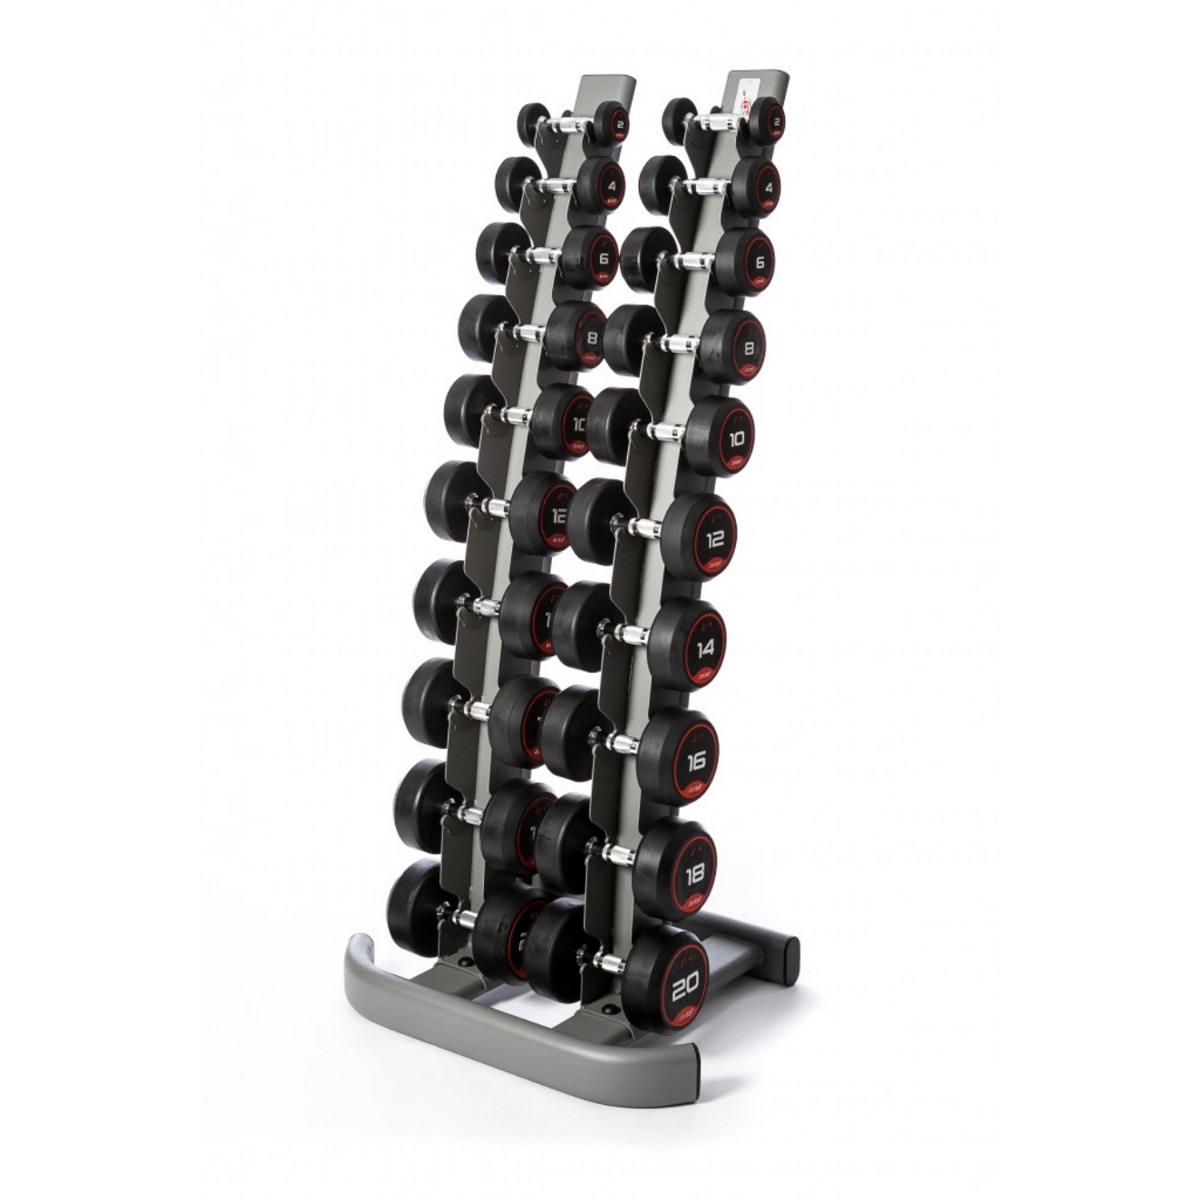 Jordan Rubber Dumbbell Set 1-10kg & Rack